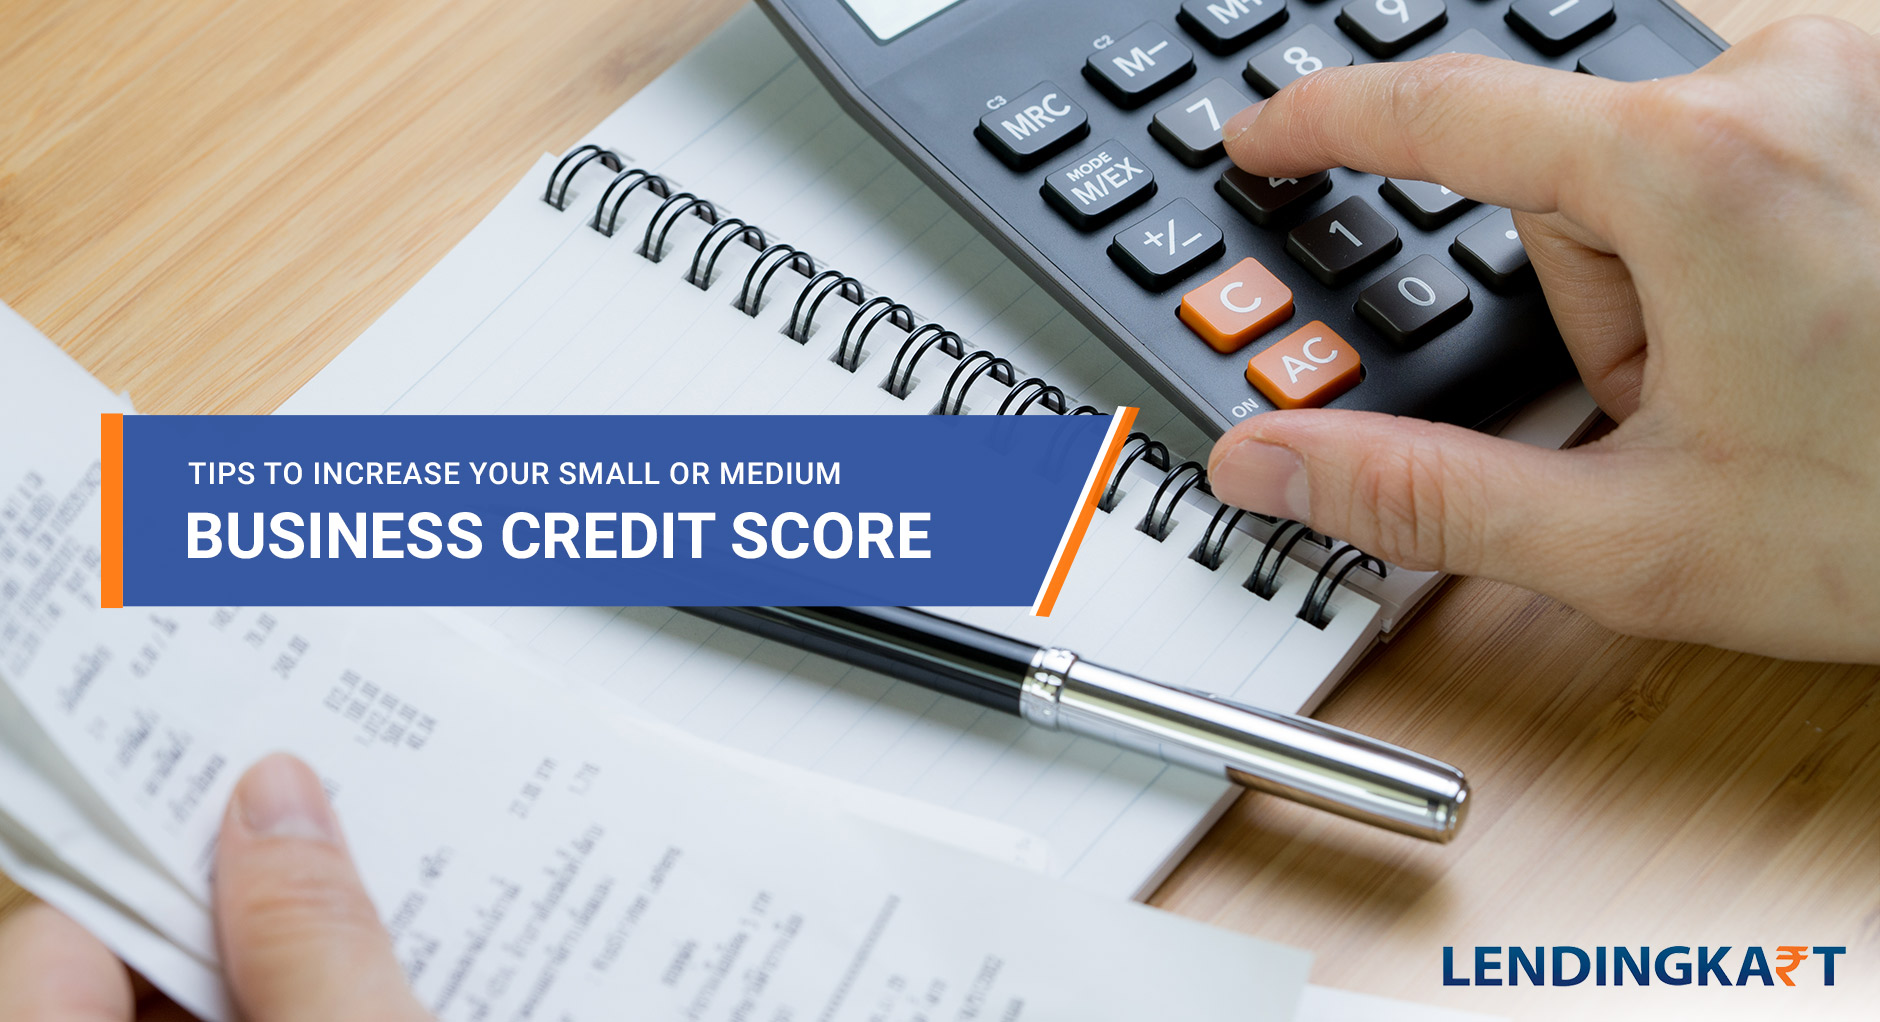 tips to increase your small or medium business credit score